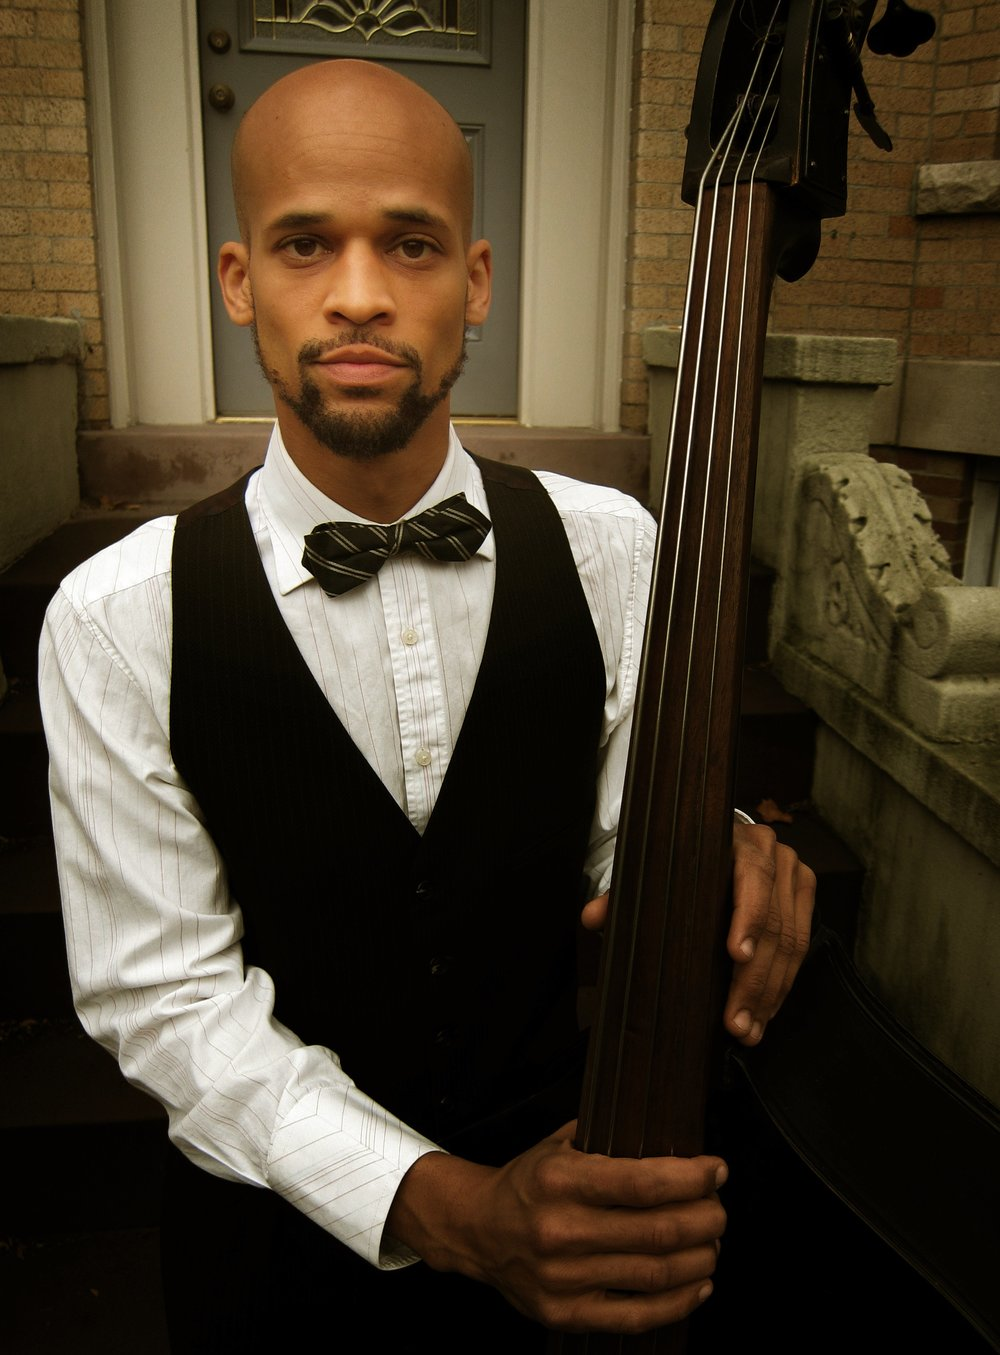 Composer and multi-instrumentalist Gregory Richardson(bass) was born in Tucson, AZ and learned Rhythm and Blues at an early age from a family of church musicians where everyone could play at least a little piano and everyone was expected to sing. He went on to study music at Bard College and settled finally in New York City where he has been living and creating ever since. Richardson tours around the world with the band Darwin Deez and gigs around New York with the trio Analogue Experimentaland with Damian Quinones y su Conjunto, playing Son, Salsa, Jazz, Cumbia, and Boogaloo. In recent years he's found a second home with the tightly-knit New York City tap dance community, performing with SoundMovement Dance Company, The Institute for the Rhythmic Arts, and The American Tap Dance Foundation. He has composed and performed in several shows with Dorrance Dance, including Myelination,SOUNDspace,ETM:The Initial Approach, ETM: Double Downat the Jacob's Pillow festival, and Delta to Dusk.